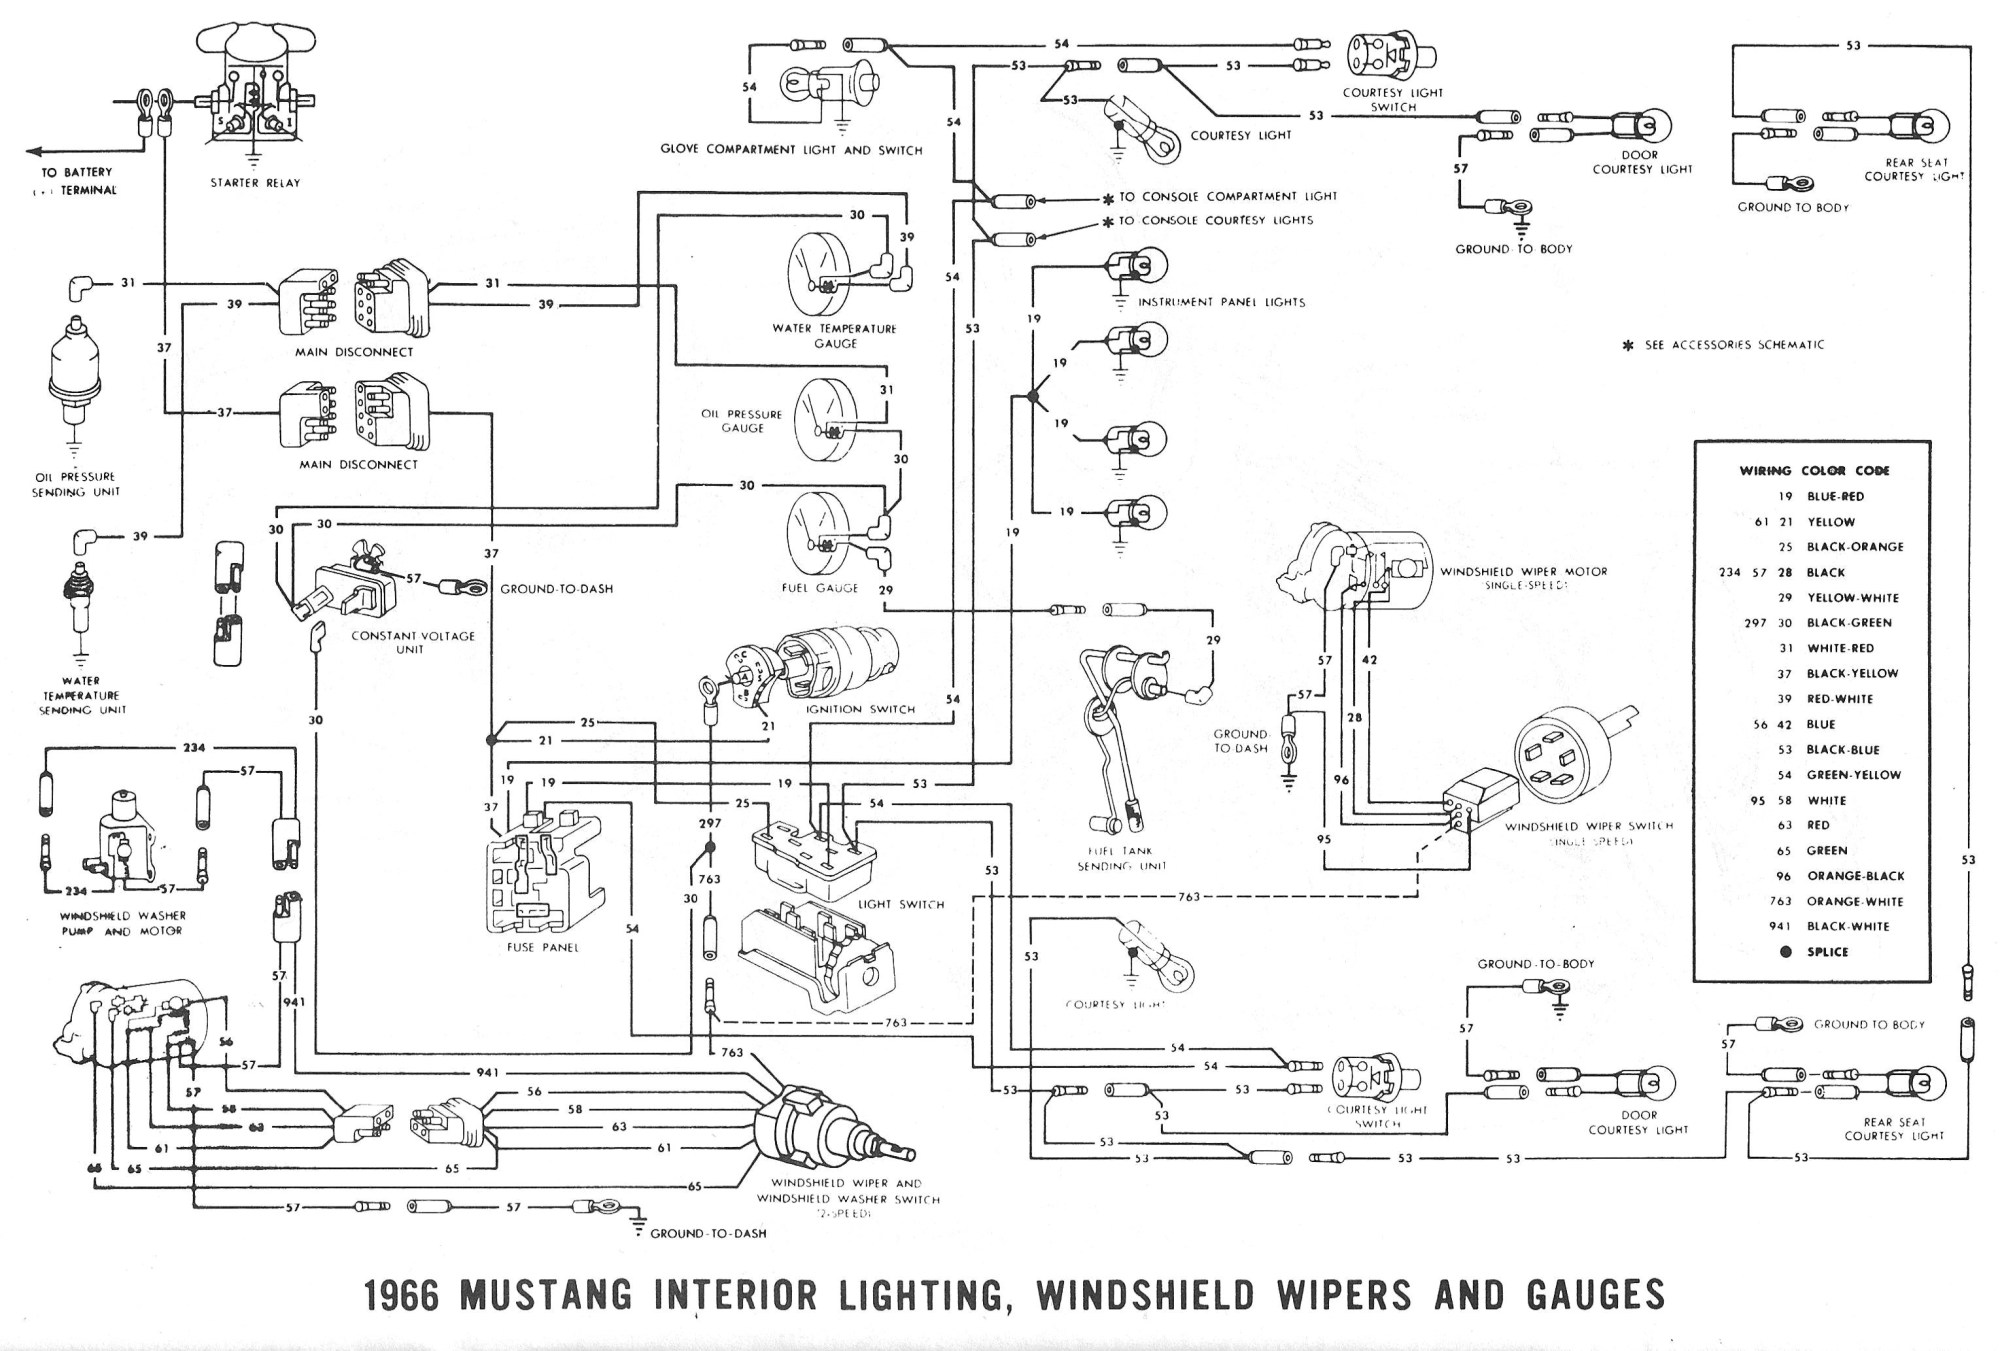 hight resolution of 96 mustang mach 460 wiring also 1972 corvette wiper wiring diagram 1966 mustang wiper pump diagram